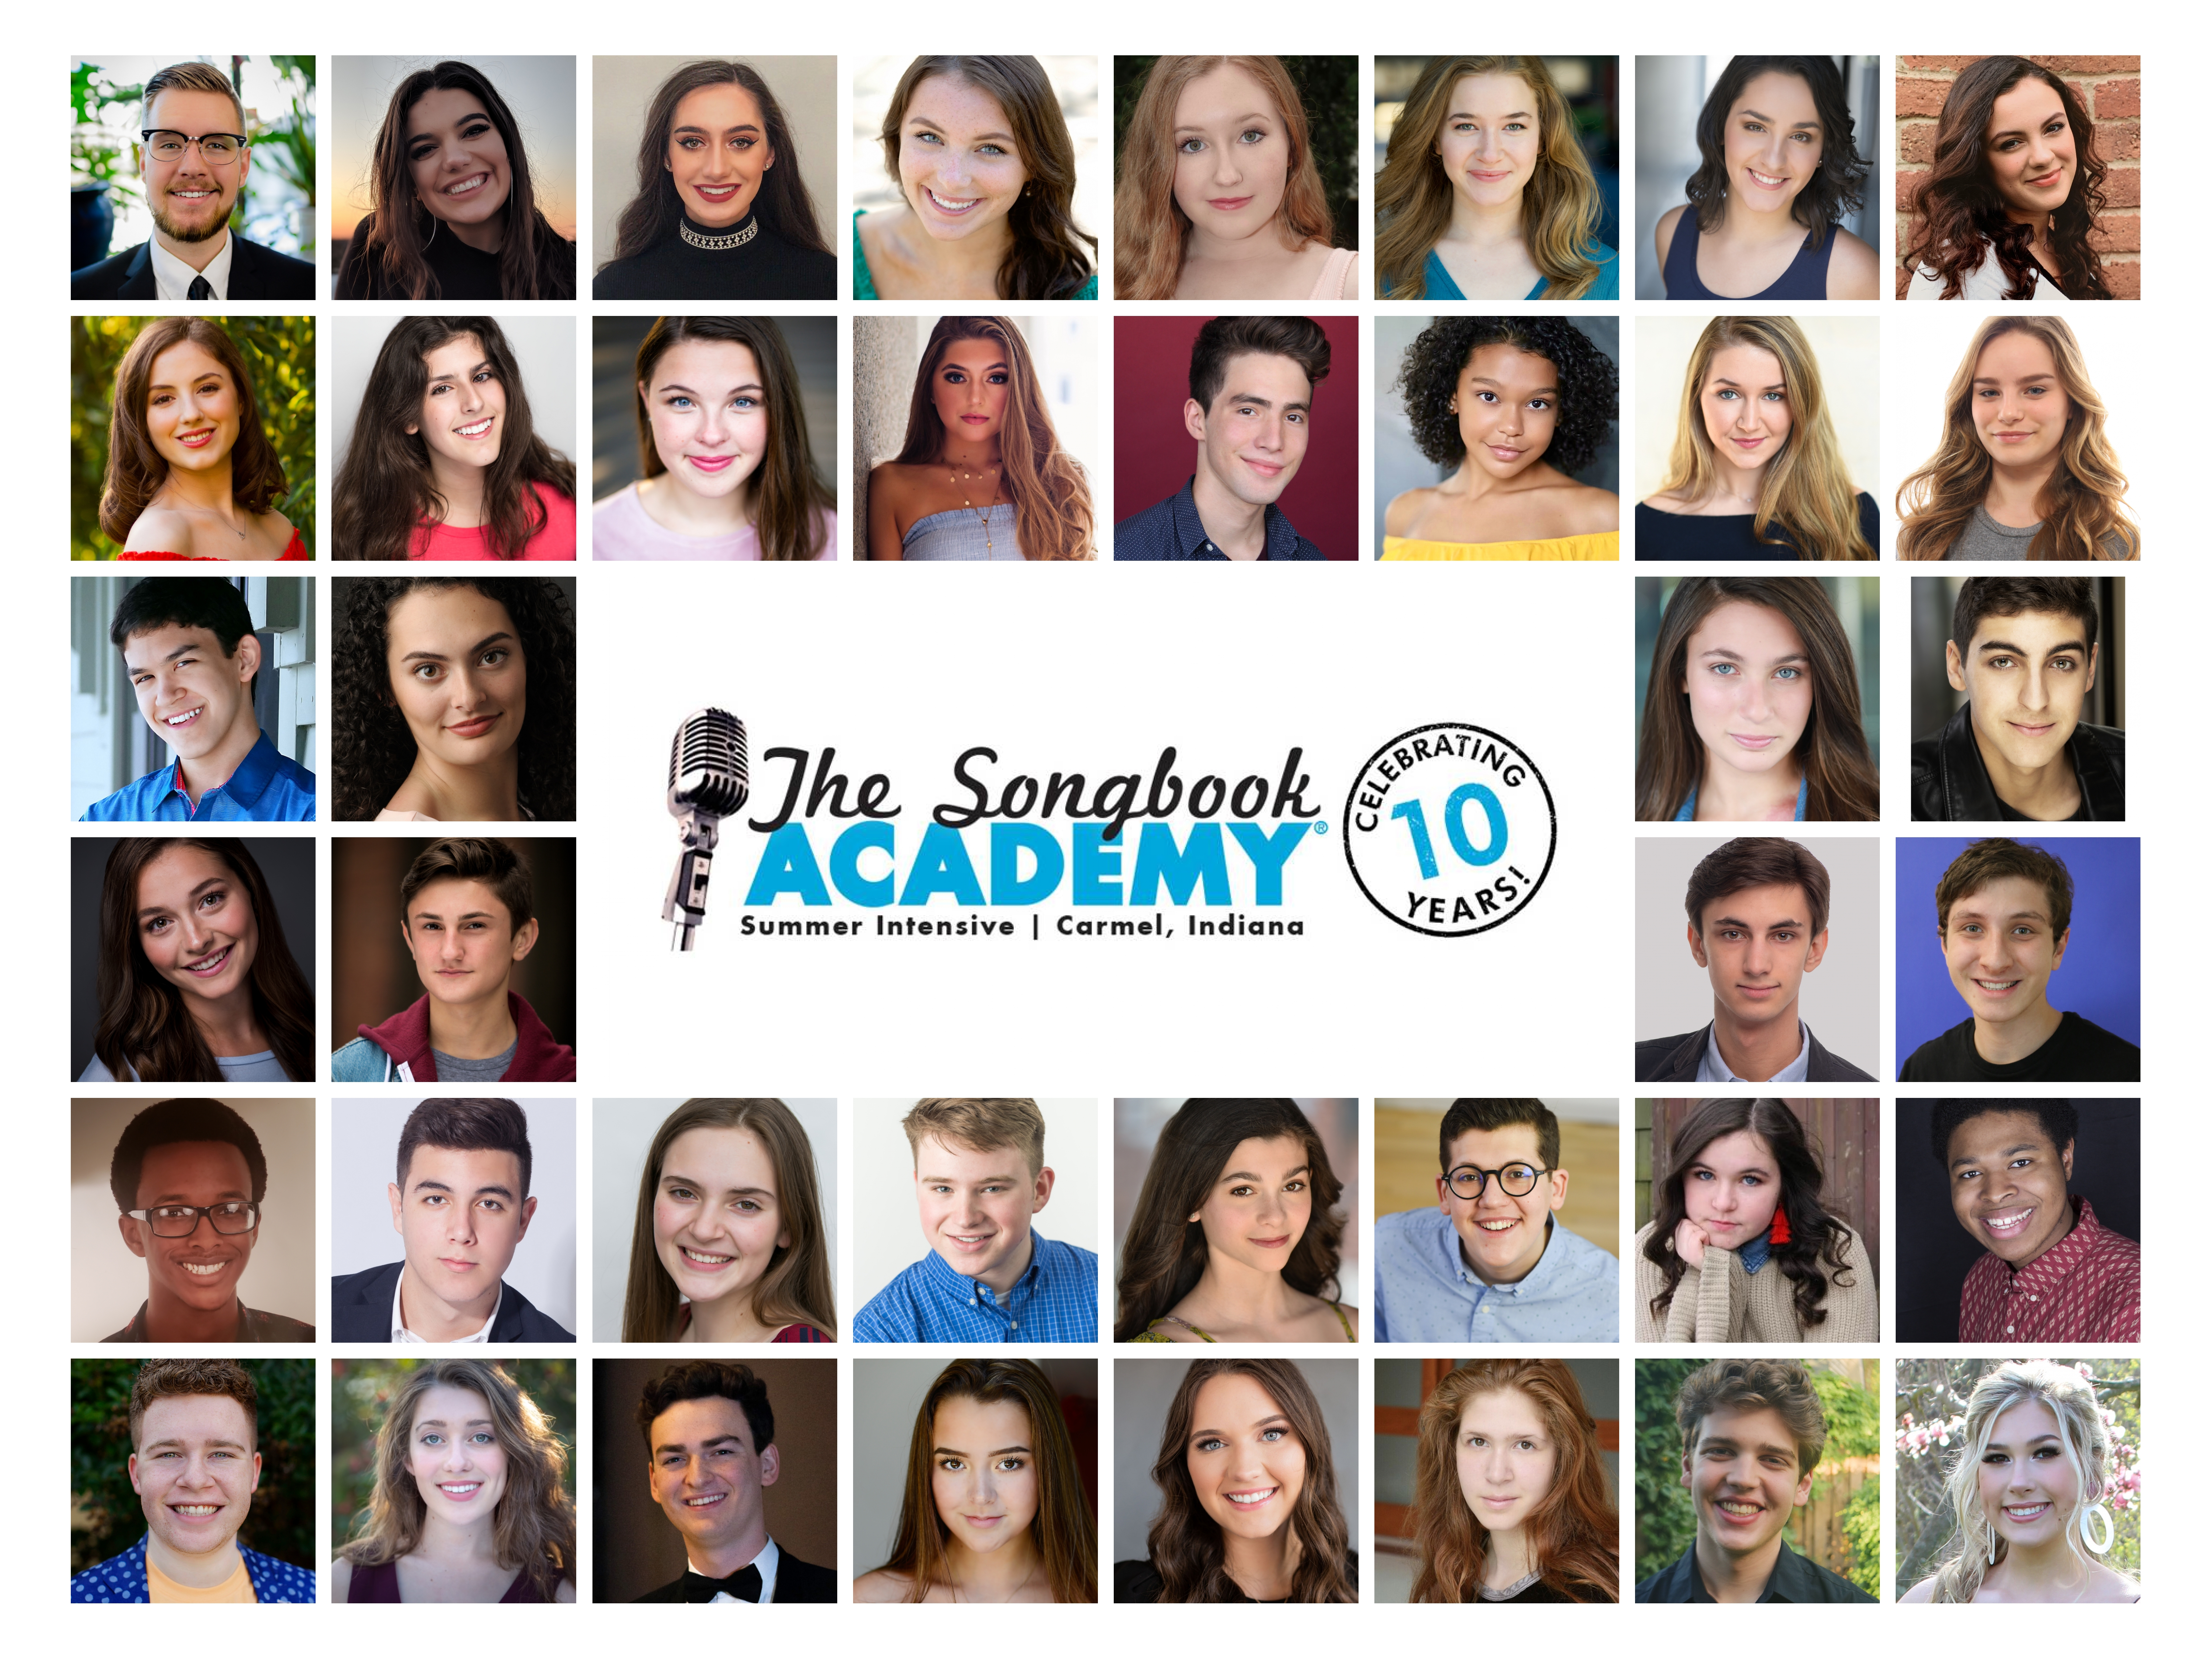 2019 Songbook Academy finalists